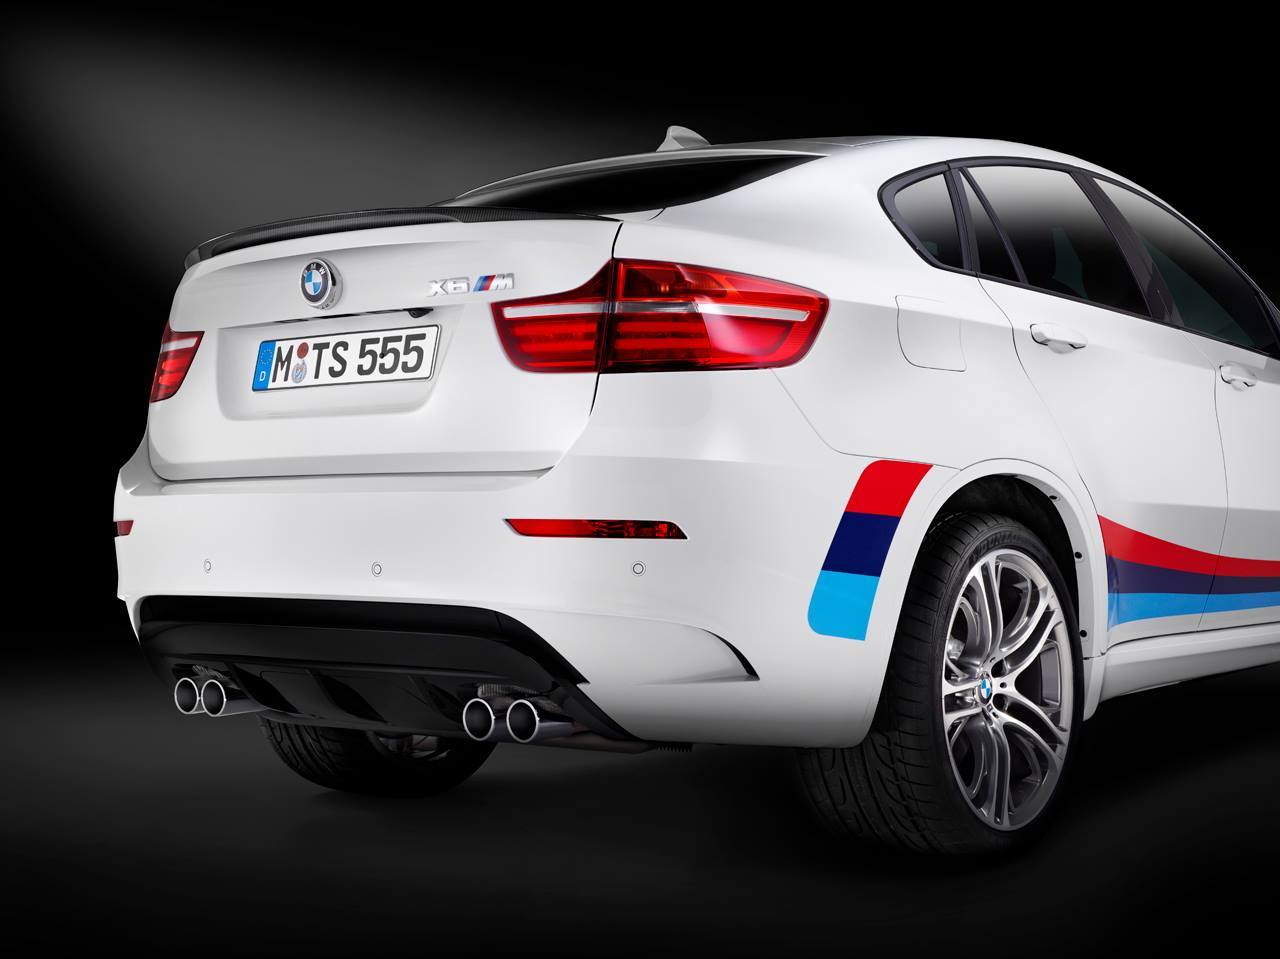 Bmw Unveils Limited Edition X6 With M Performance Stripes